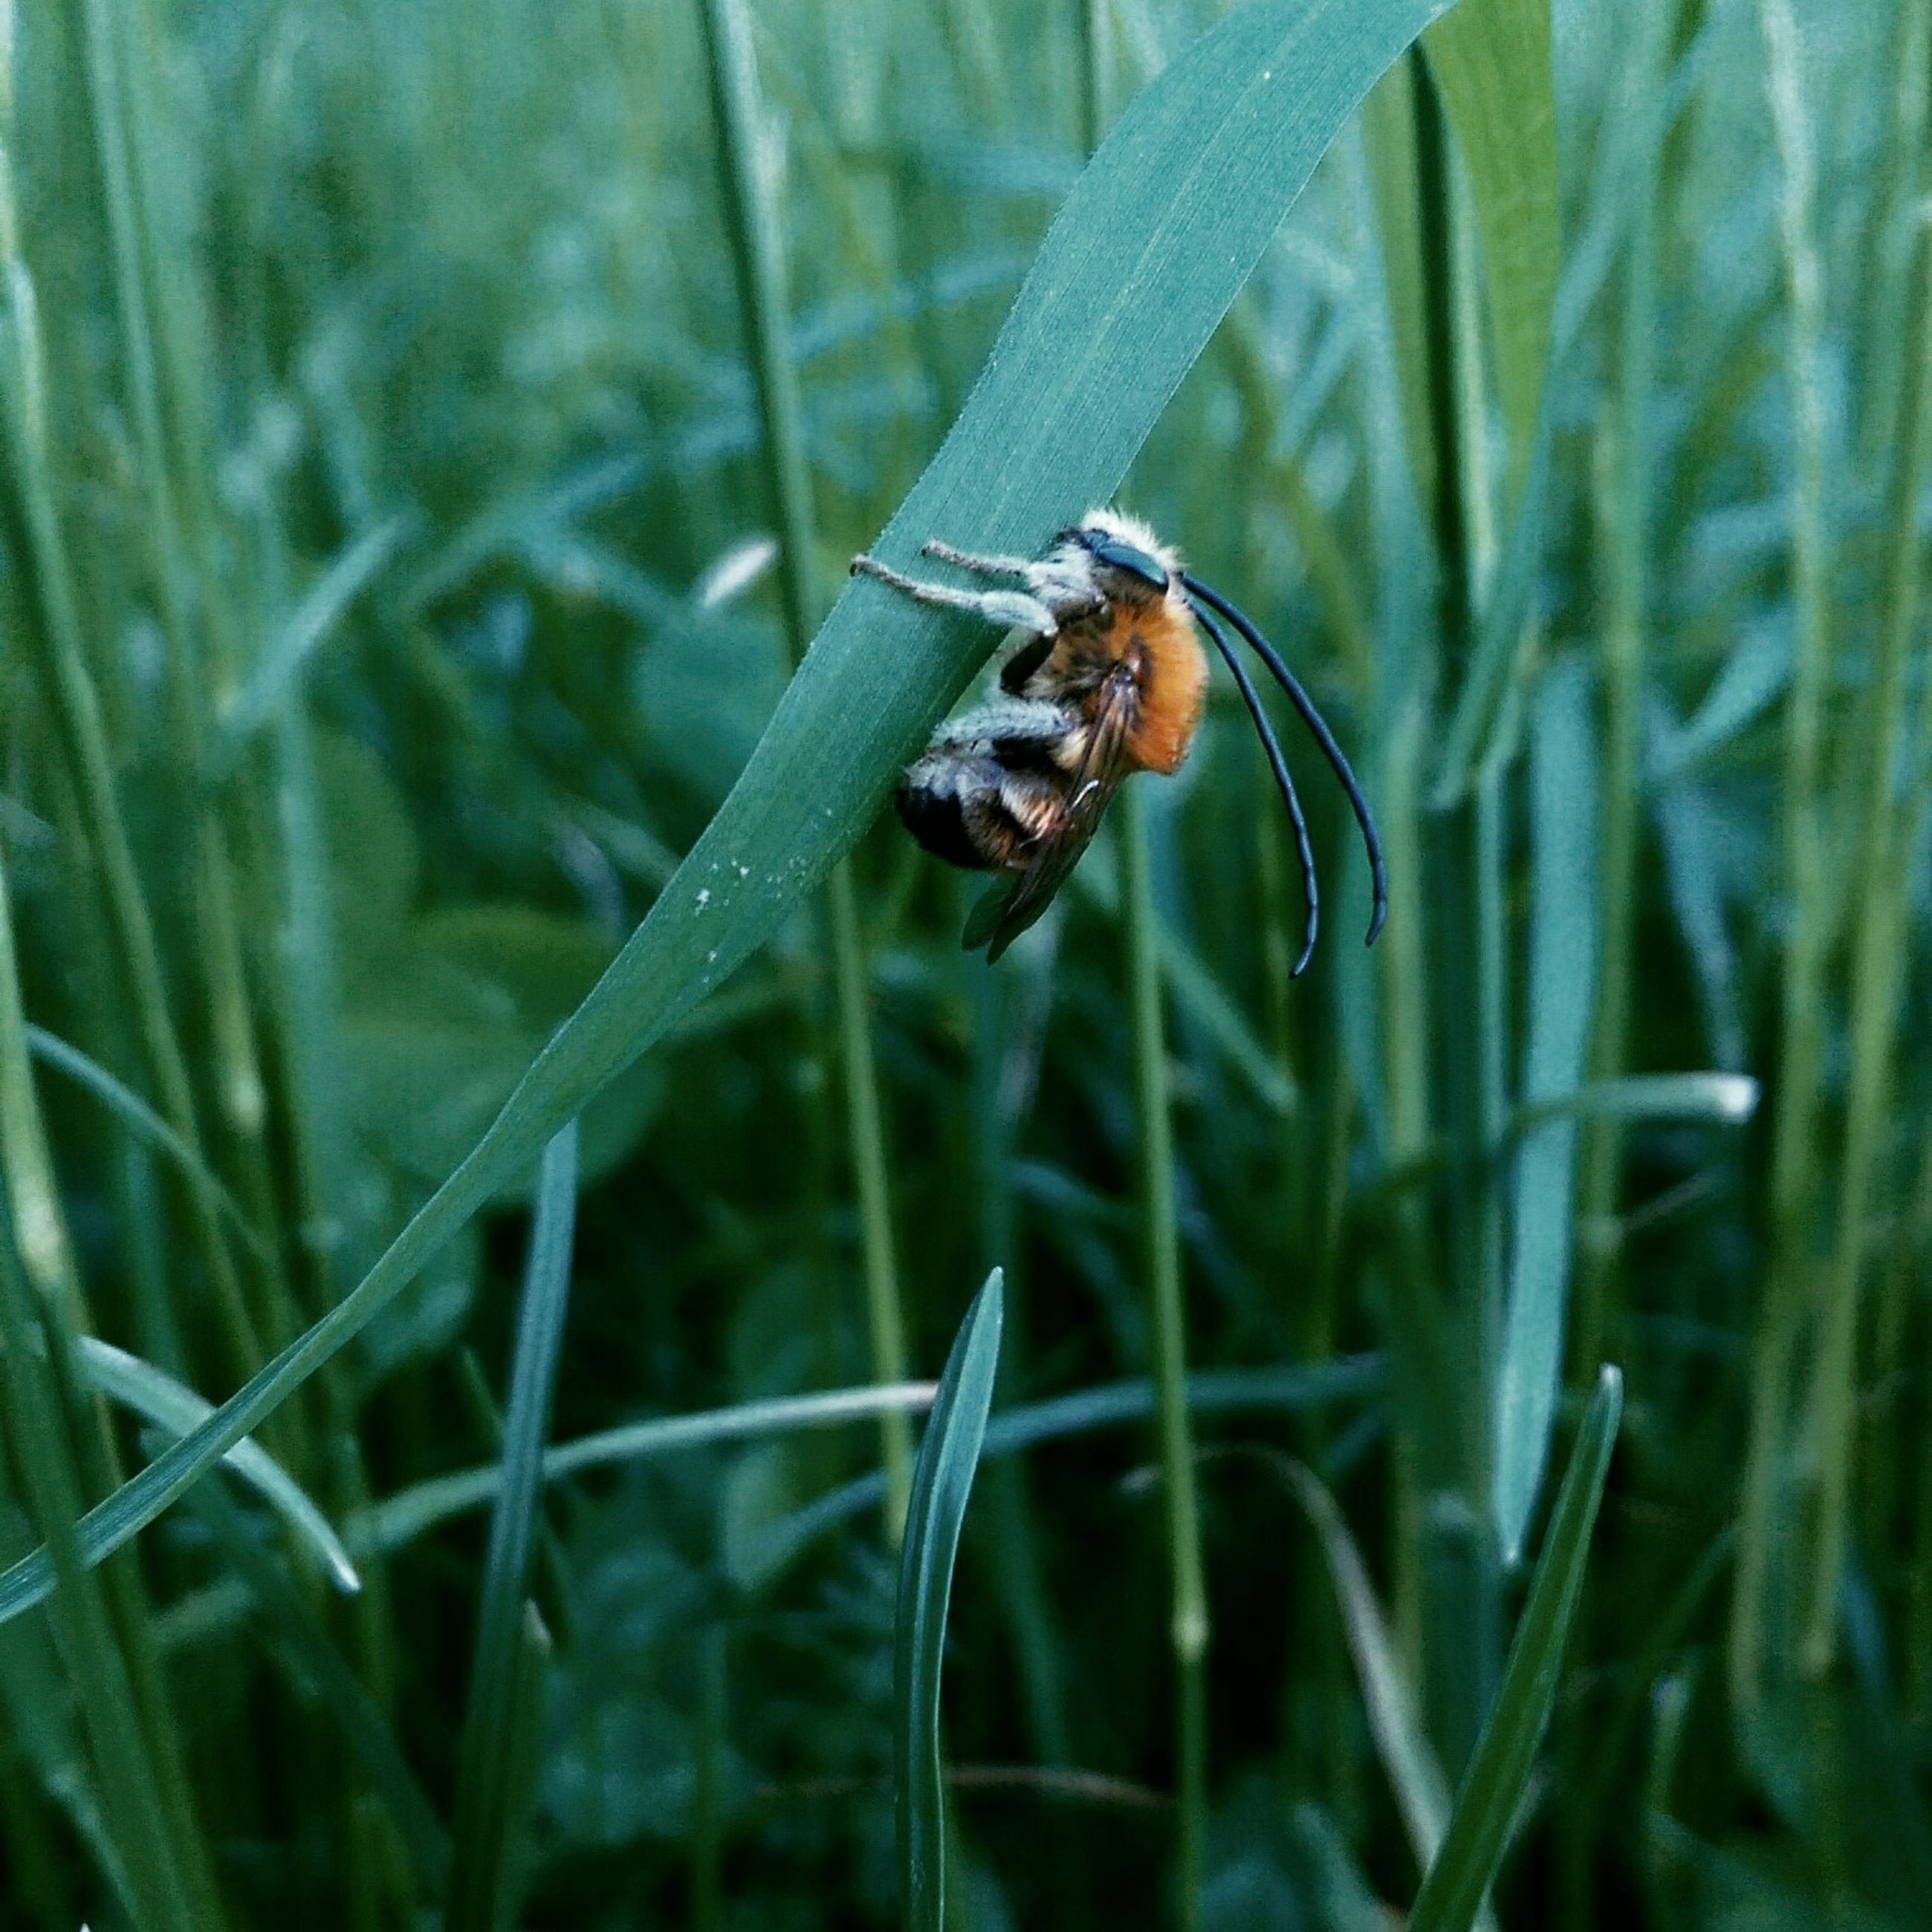 insect, animal themes, one animal, animals in the wild, wildlife, grass, plant, green color, close-up, selective focus, focus on foreground, nature, growth, outdoors, beauty in nature, day, no people, leaf, zoology, field